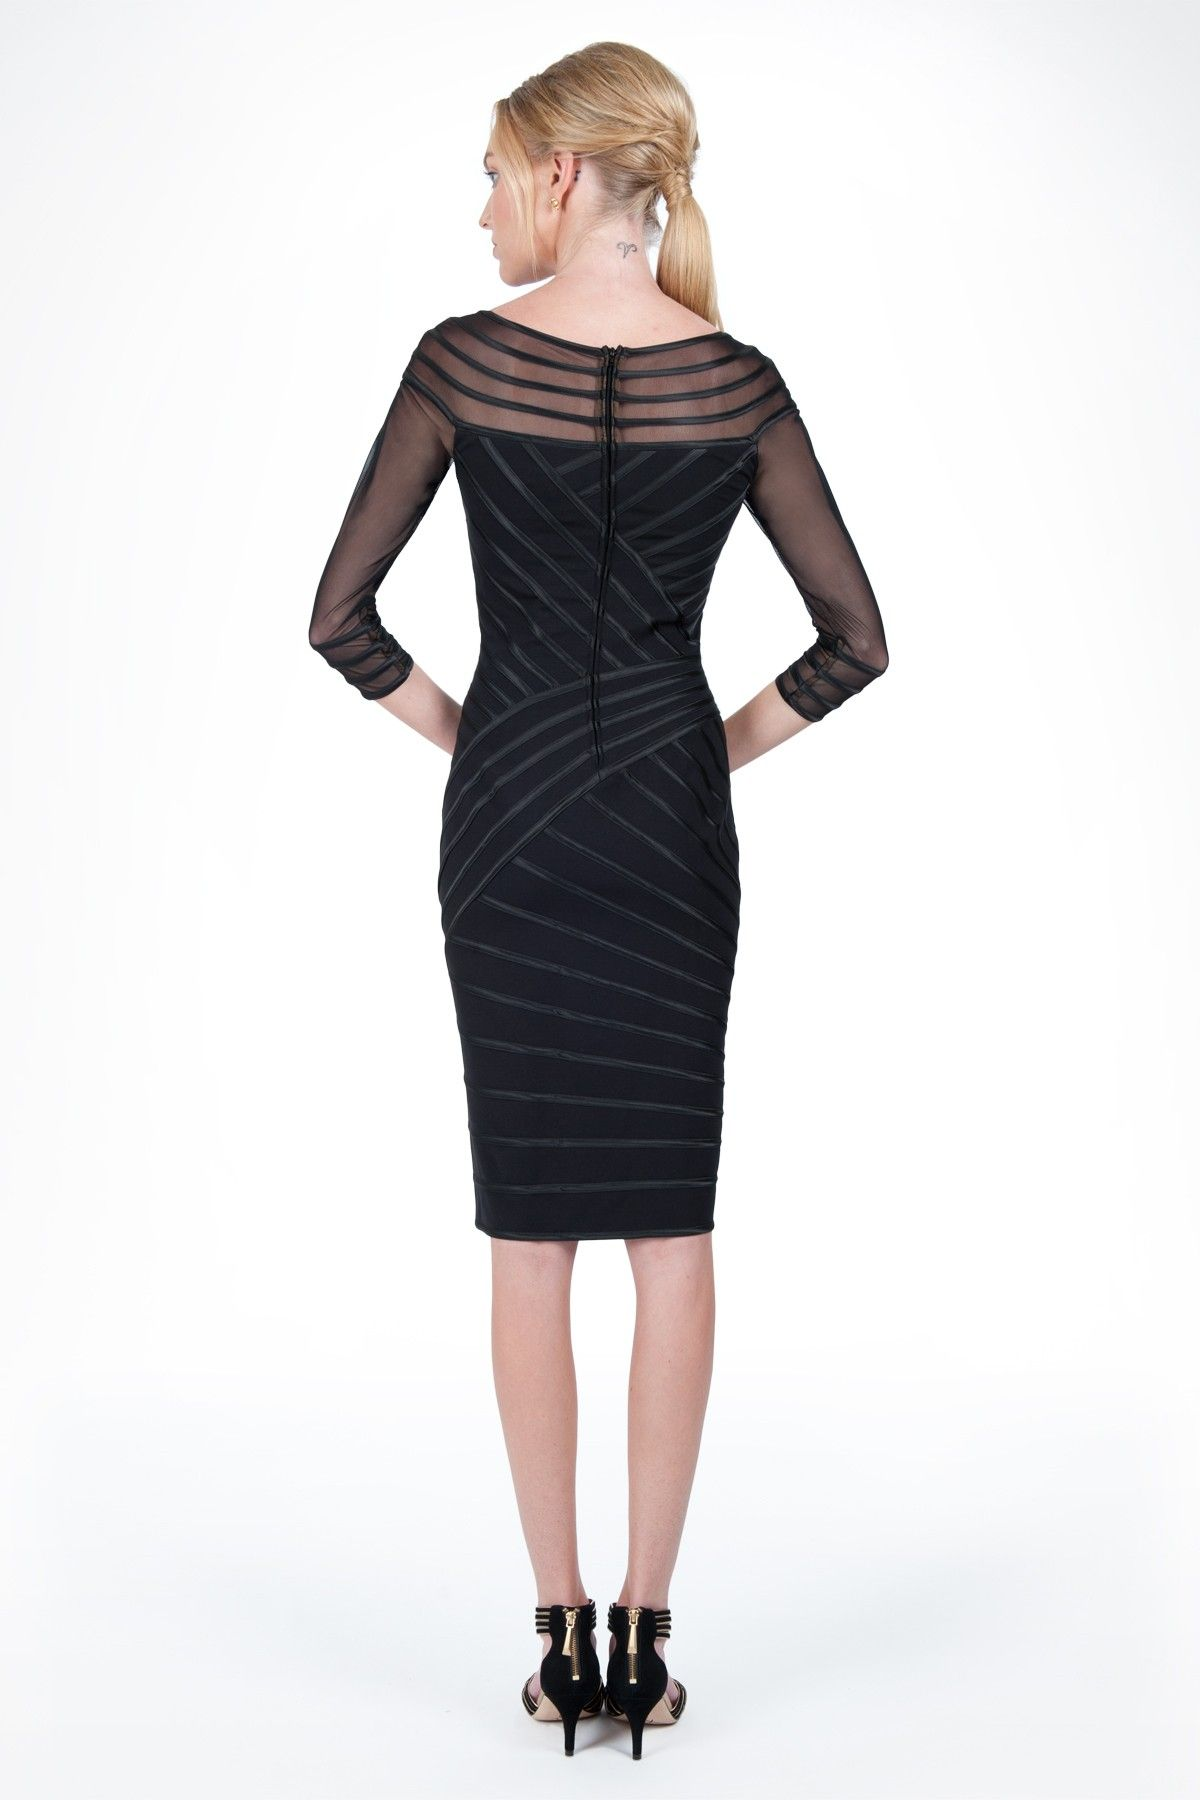 Sheer Illusion Cocktail Dress In Black Holiday Dress Guide Tadashi Shoji Black Holiday Dress Dresses Cocktail Dress [ 1800 x 1200 Pixel ]